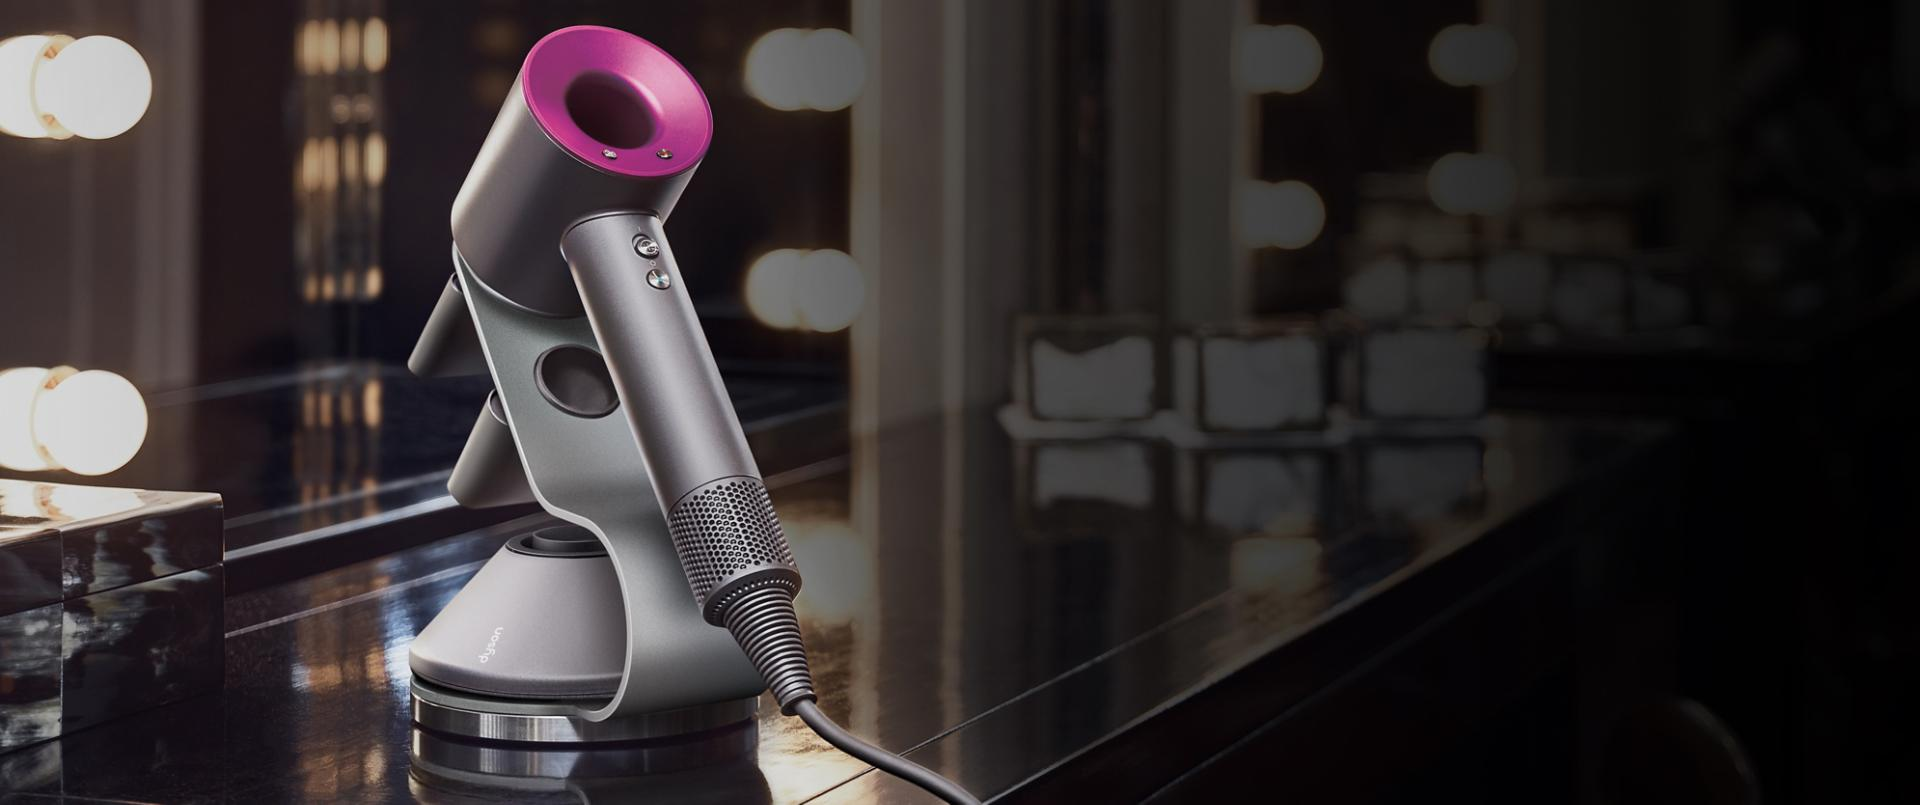 Dyson machines in hotel room